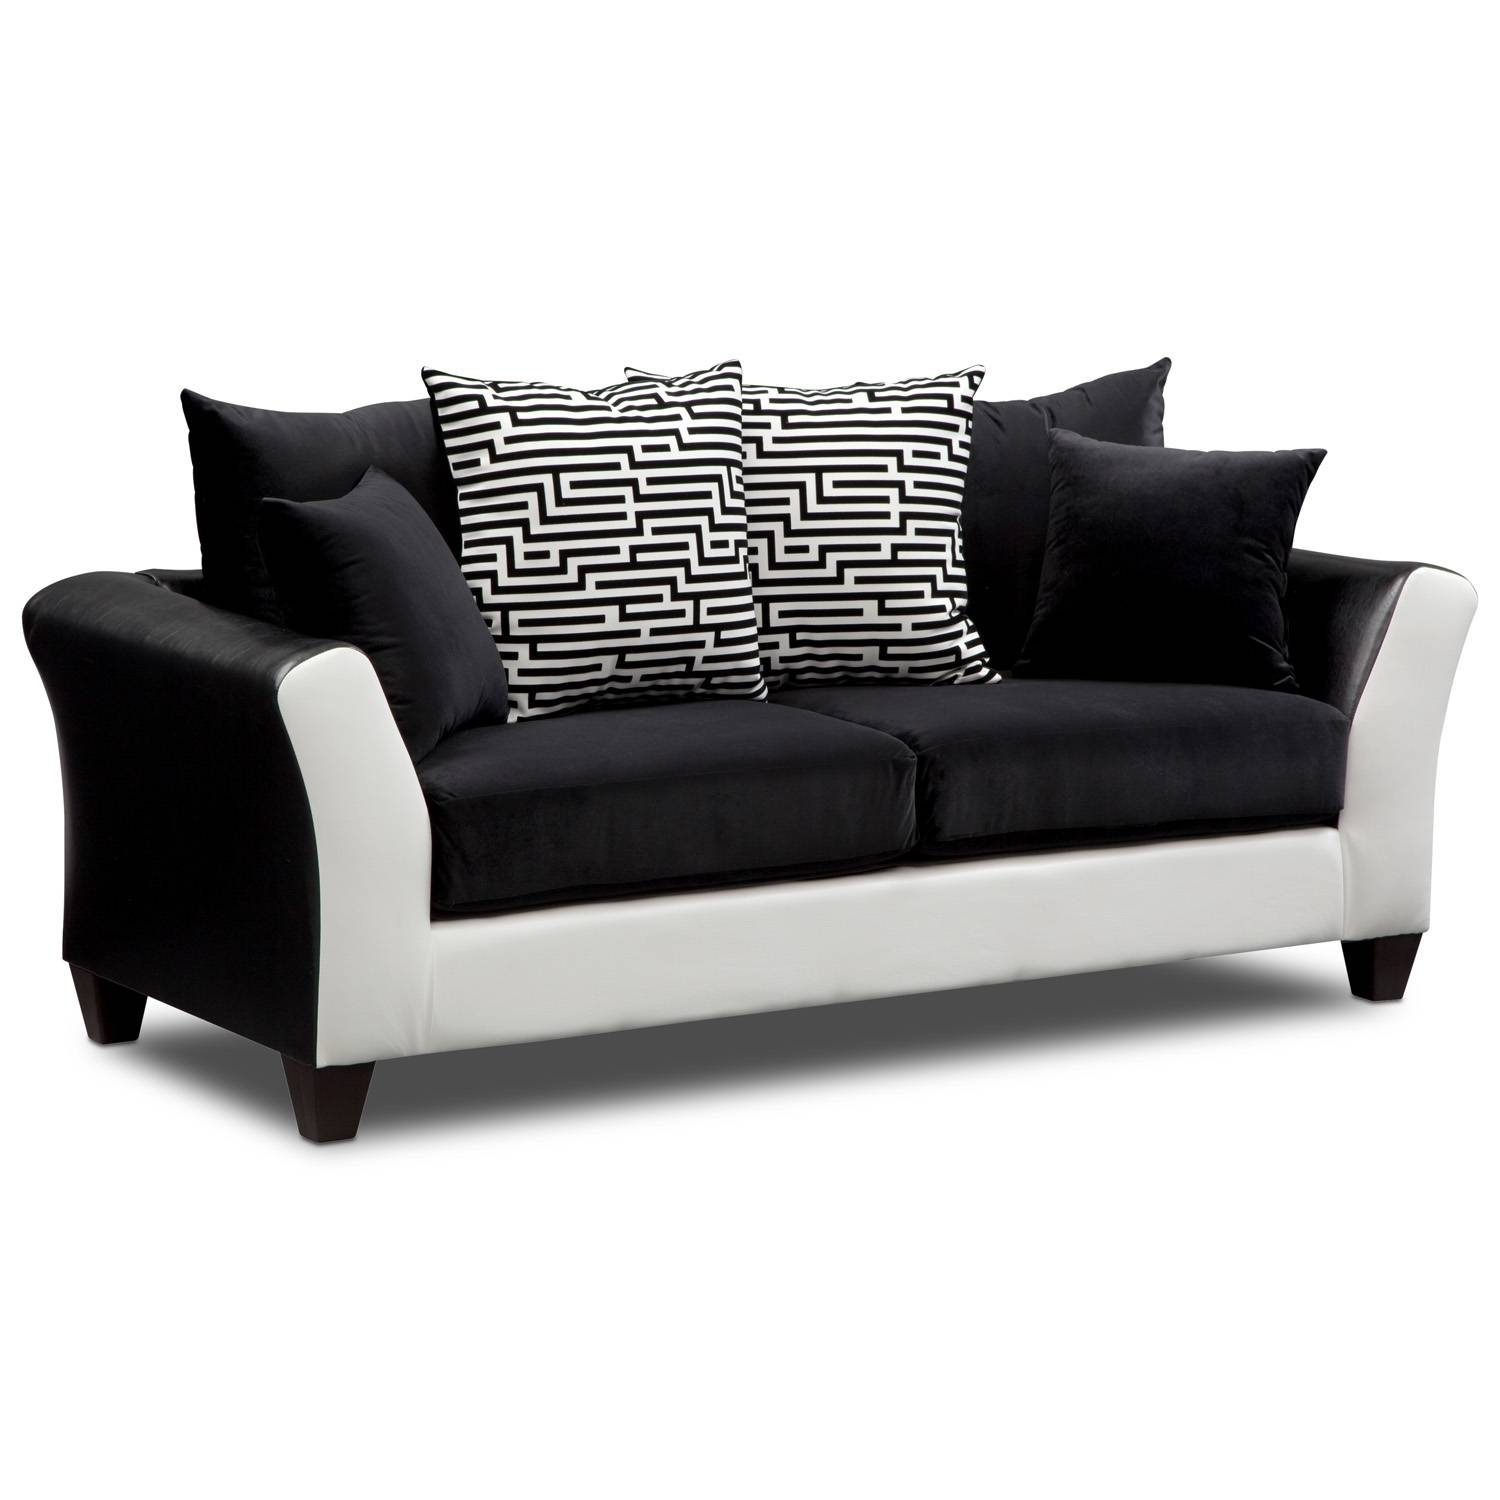 25 Inspirations of Value City Sofas